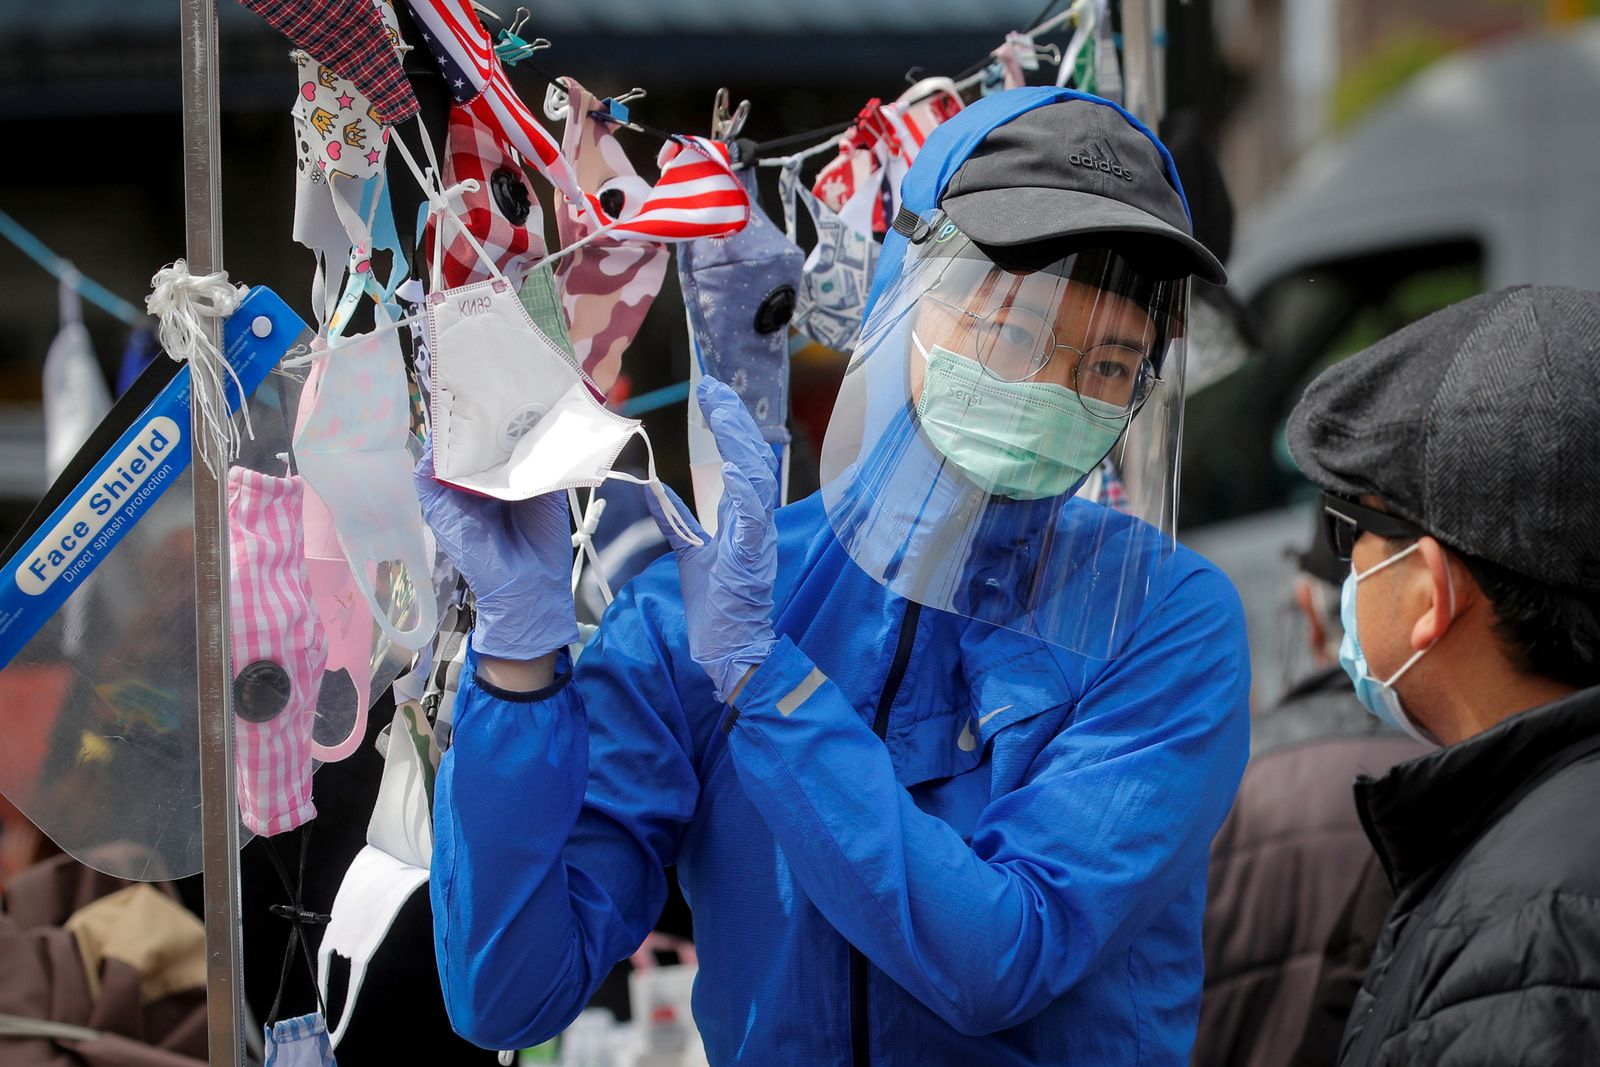 A man speaks to a street vendor about face masks, during the outbreak of the coronavirus disease (COVID-19), in the Corona section of Queens, New York